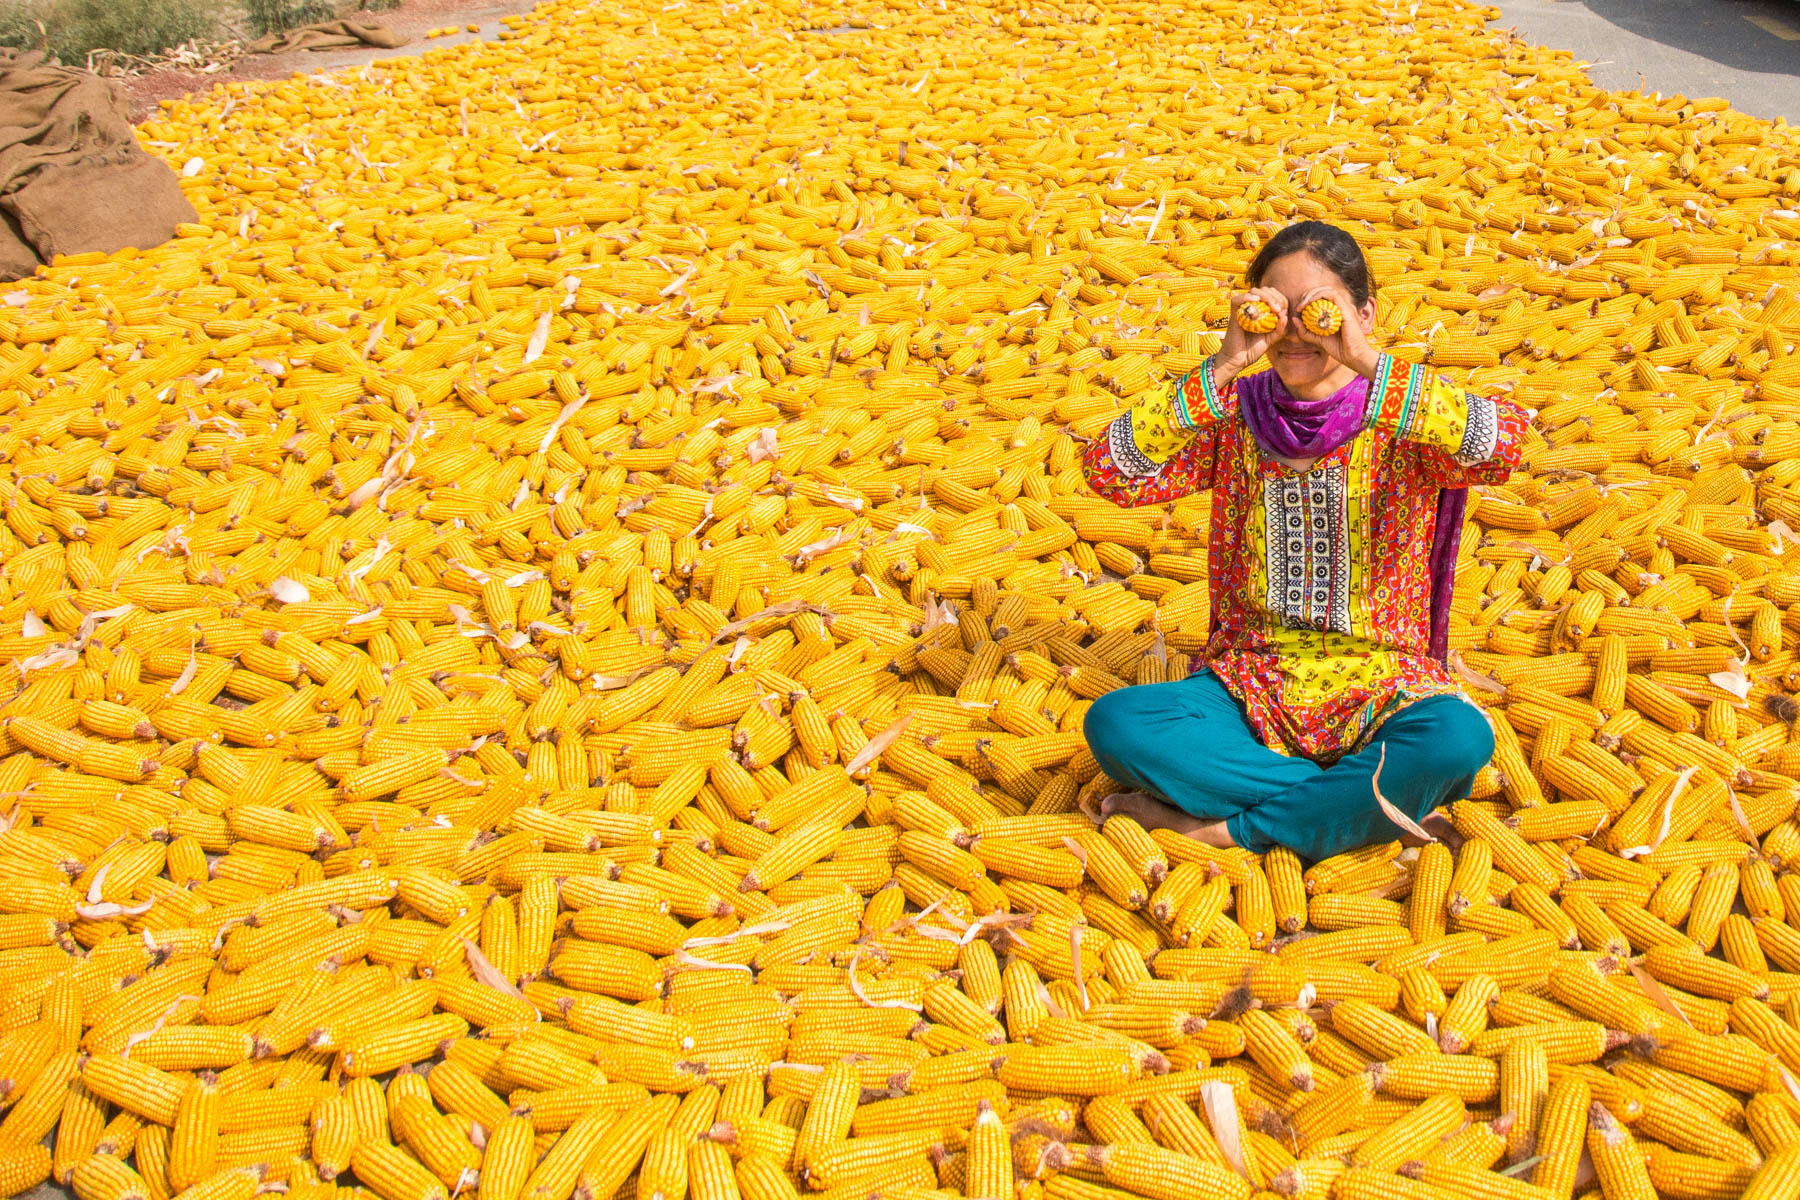 Alex of Lost With Purpose swimming in a sea of corn in Lahore, Pakistan